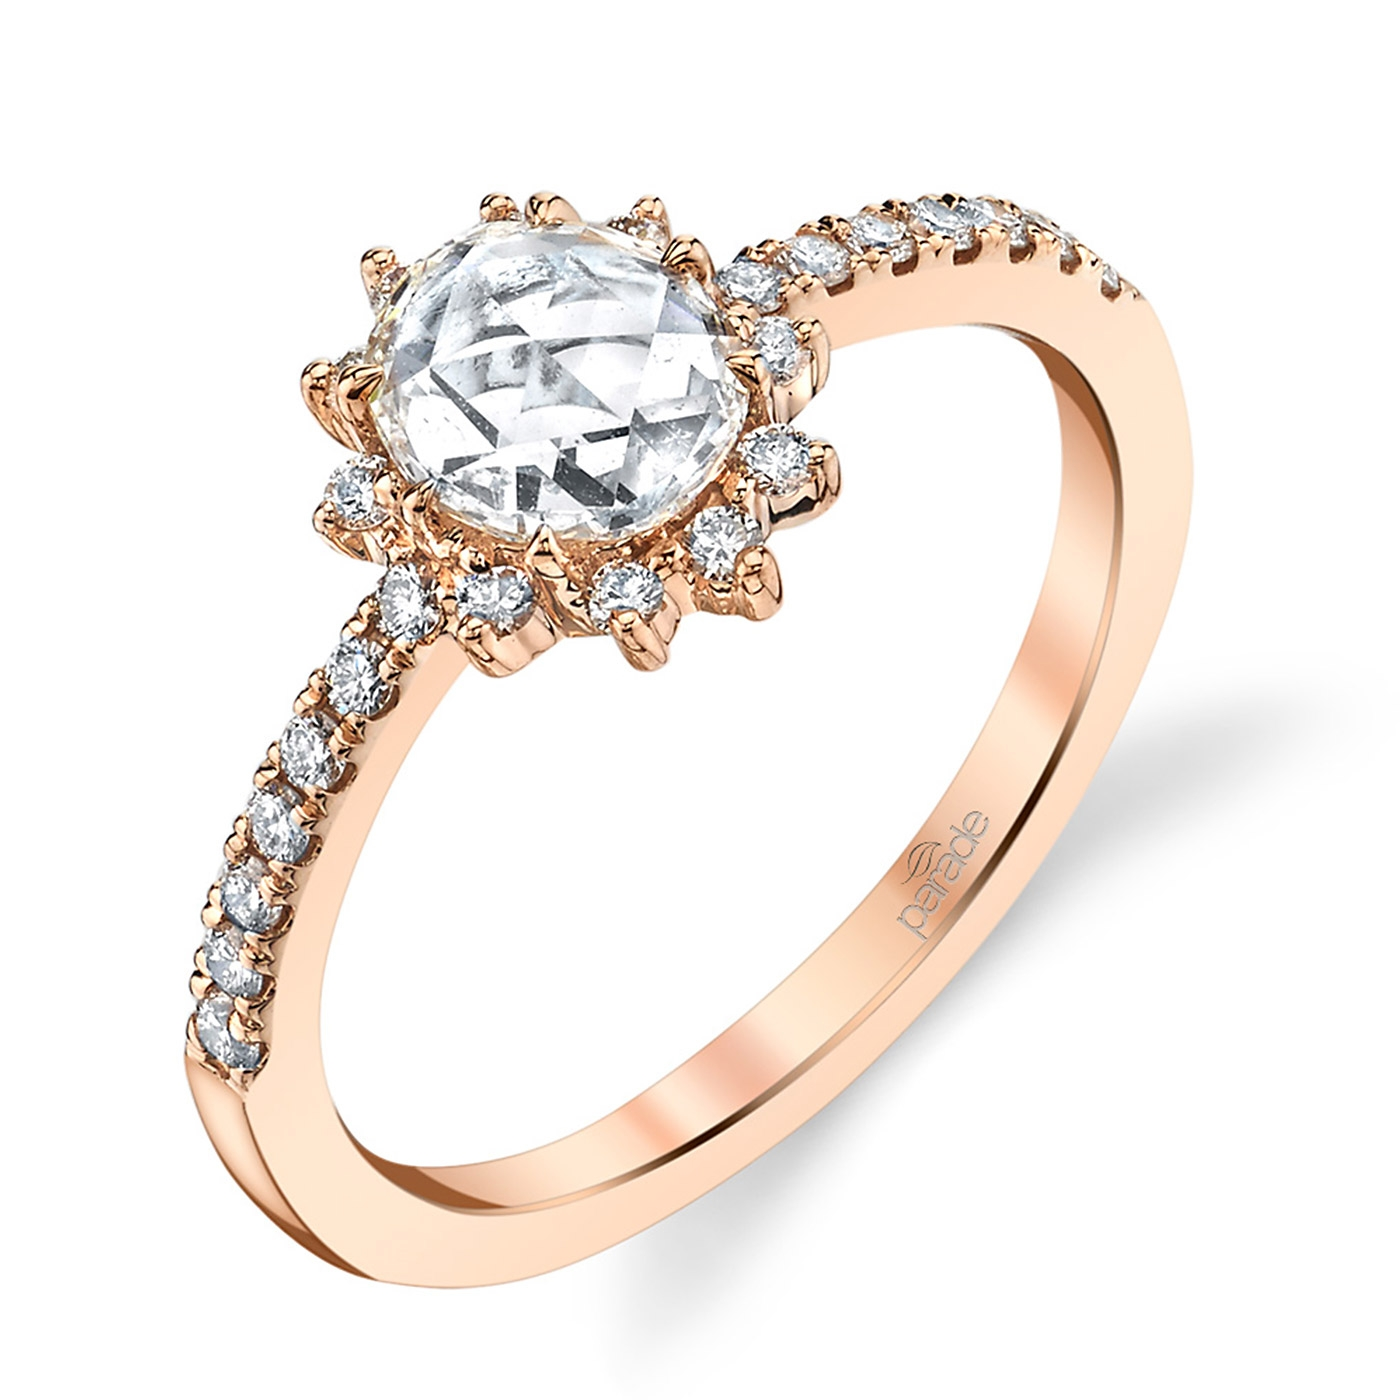 Parade Lumiere Bridal 18 Karat Diamond Engagement Ring LMBR3989 O